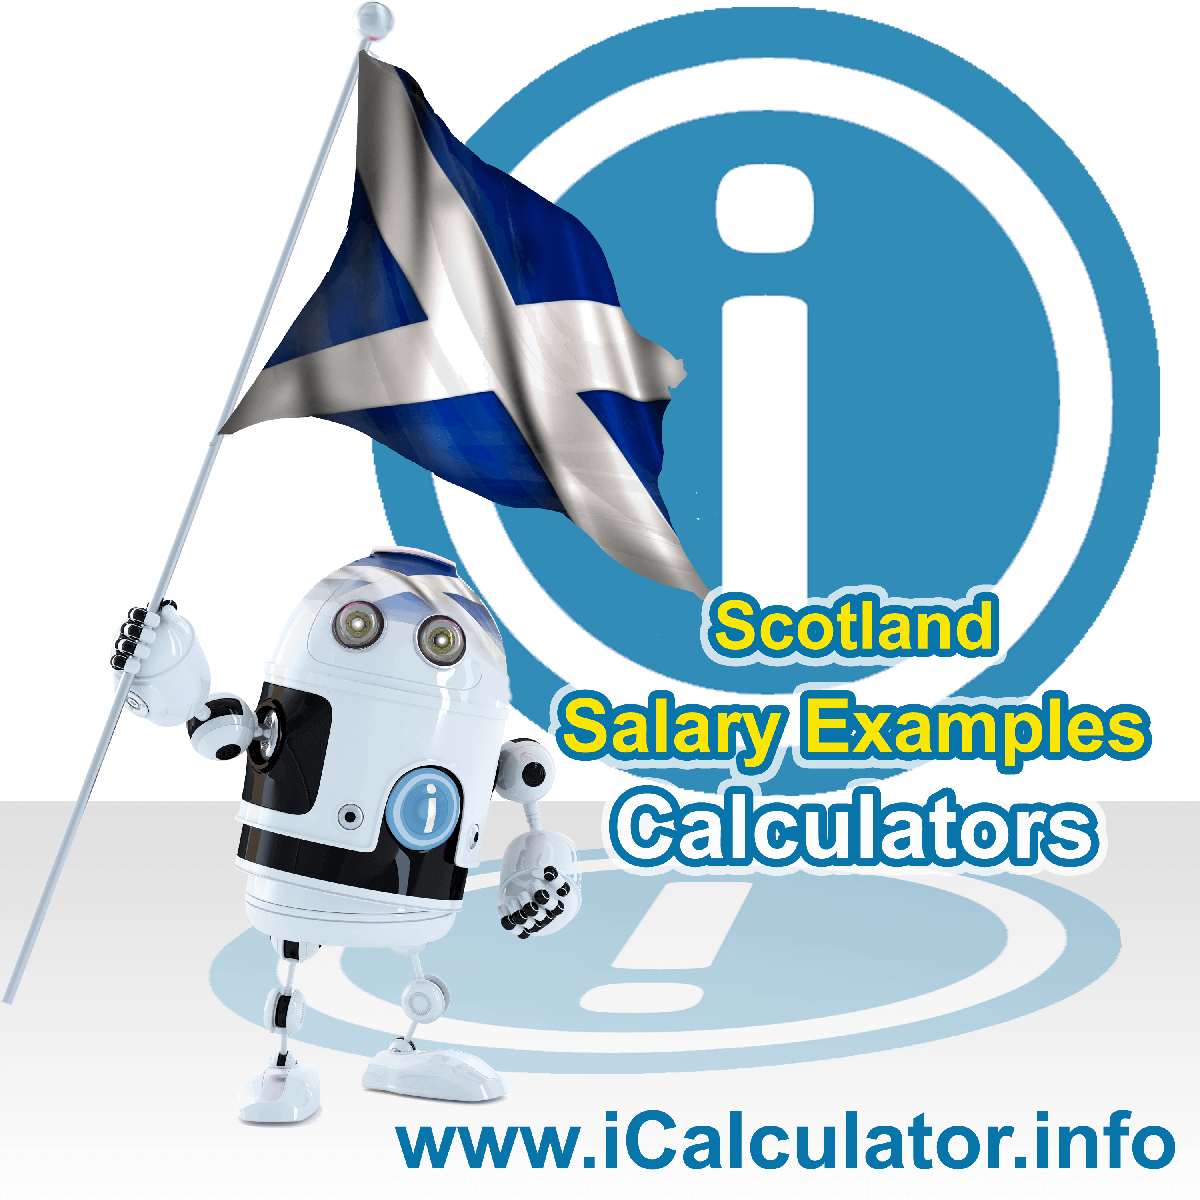 Scotland Salary Examples. This image shows the United Kingdom flag and information relating to the tax formula used to calculate Scottish Salary Examples